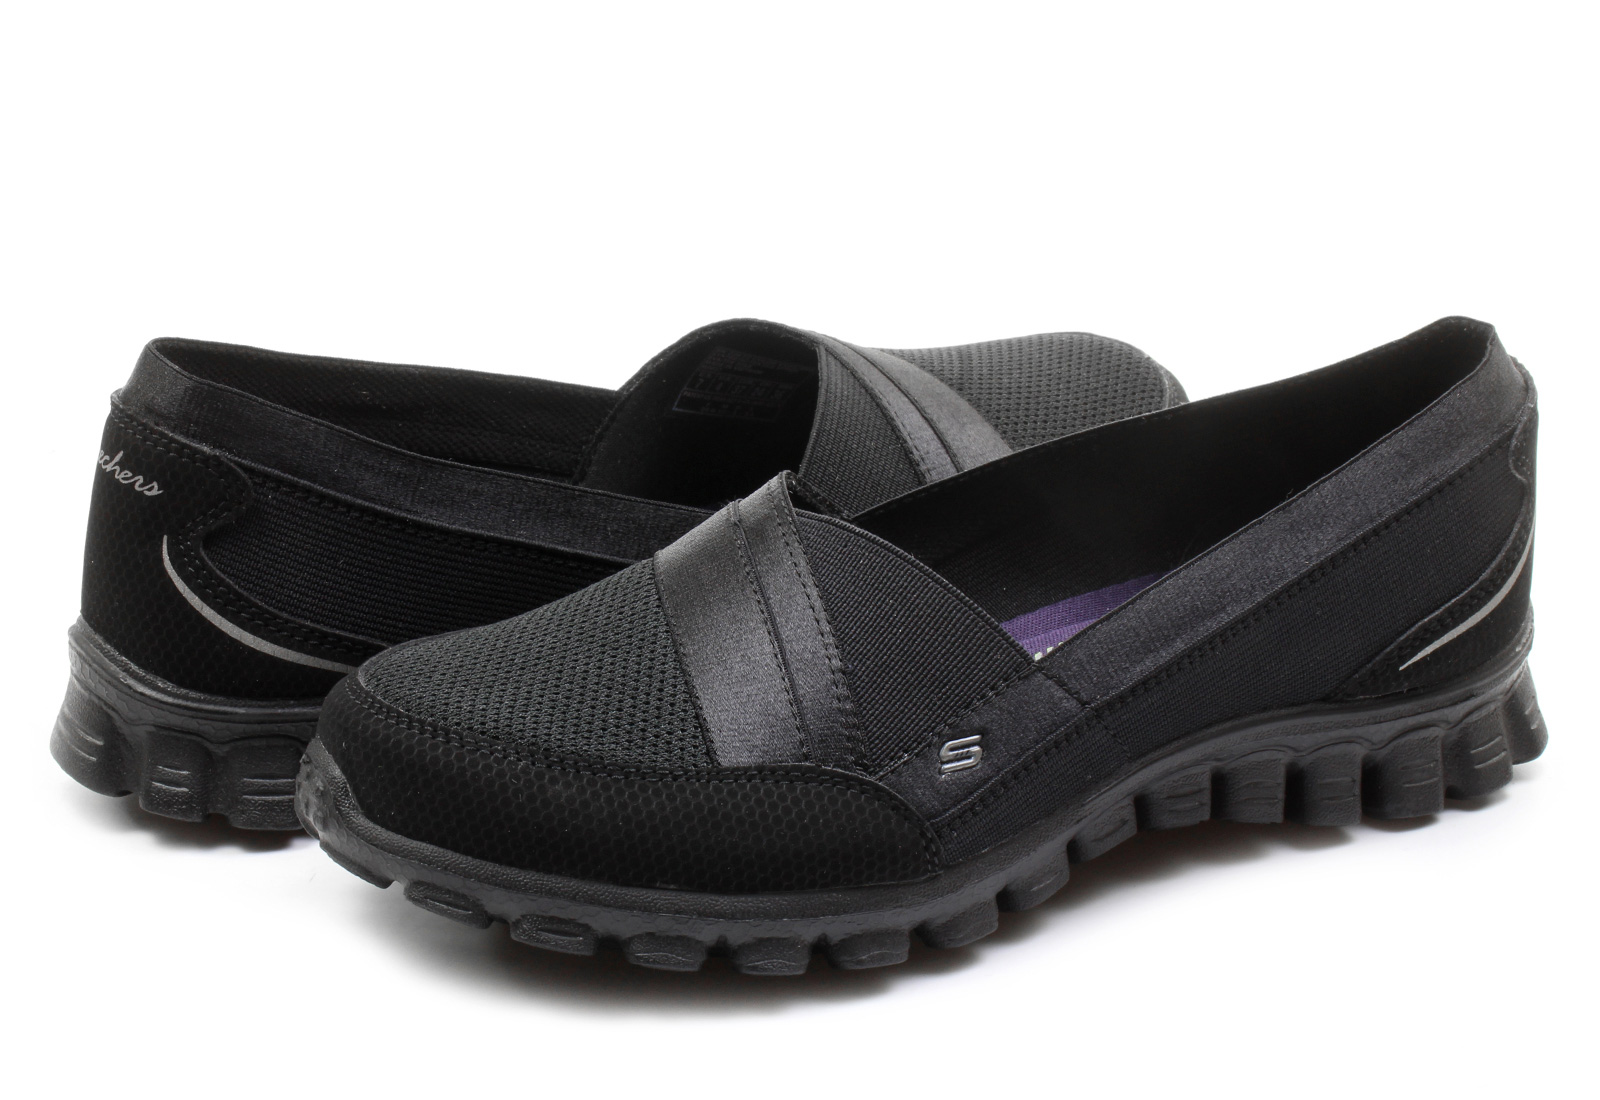 Boasting a slingback design and a cute wedge heel, these suede peep-toe sandals from Skechers are a cut above the rest! Designed with comfort and fashion in mind, they'll keep you stylin' through the whole season.